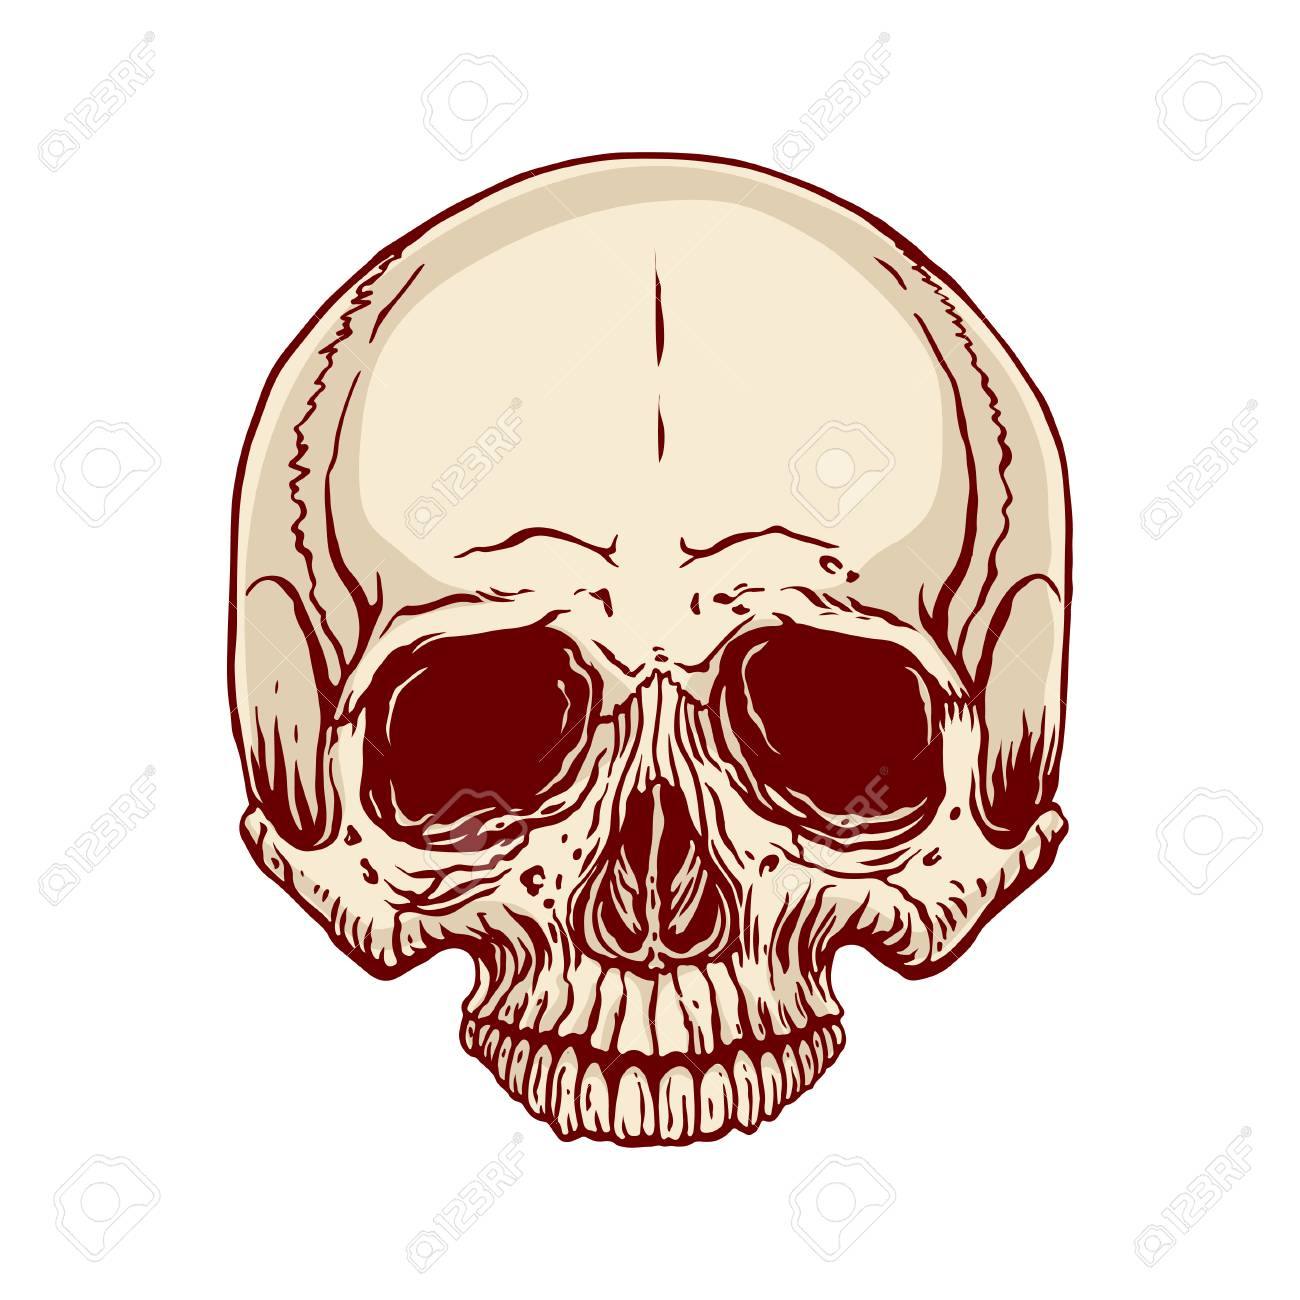 Hand Drawn Illustration Of Anatomy Human Skull Without A Lower ...